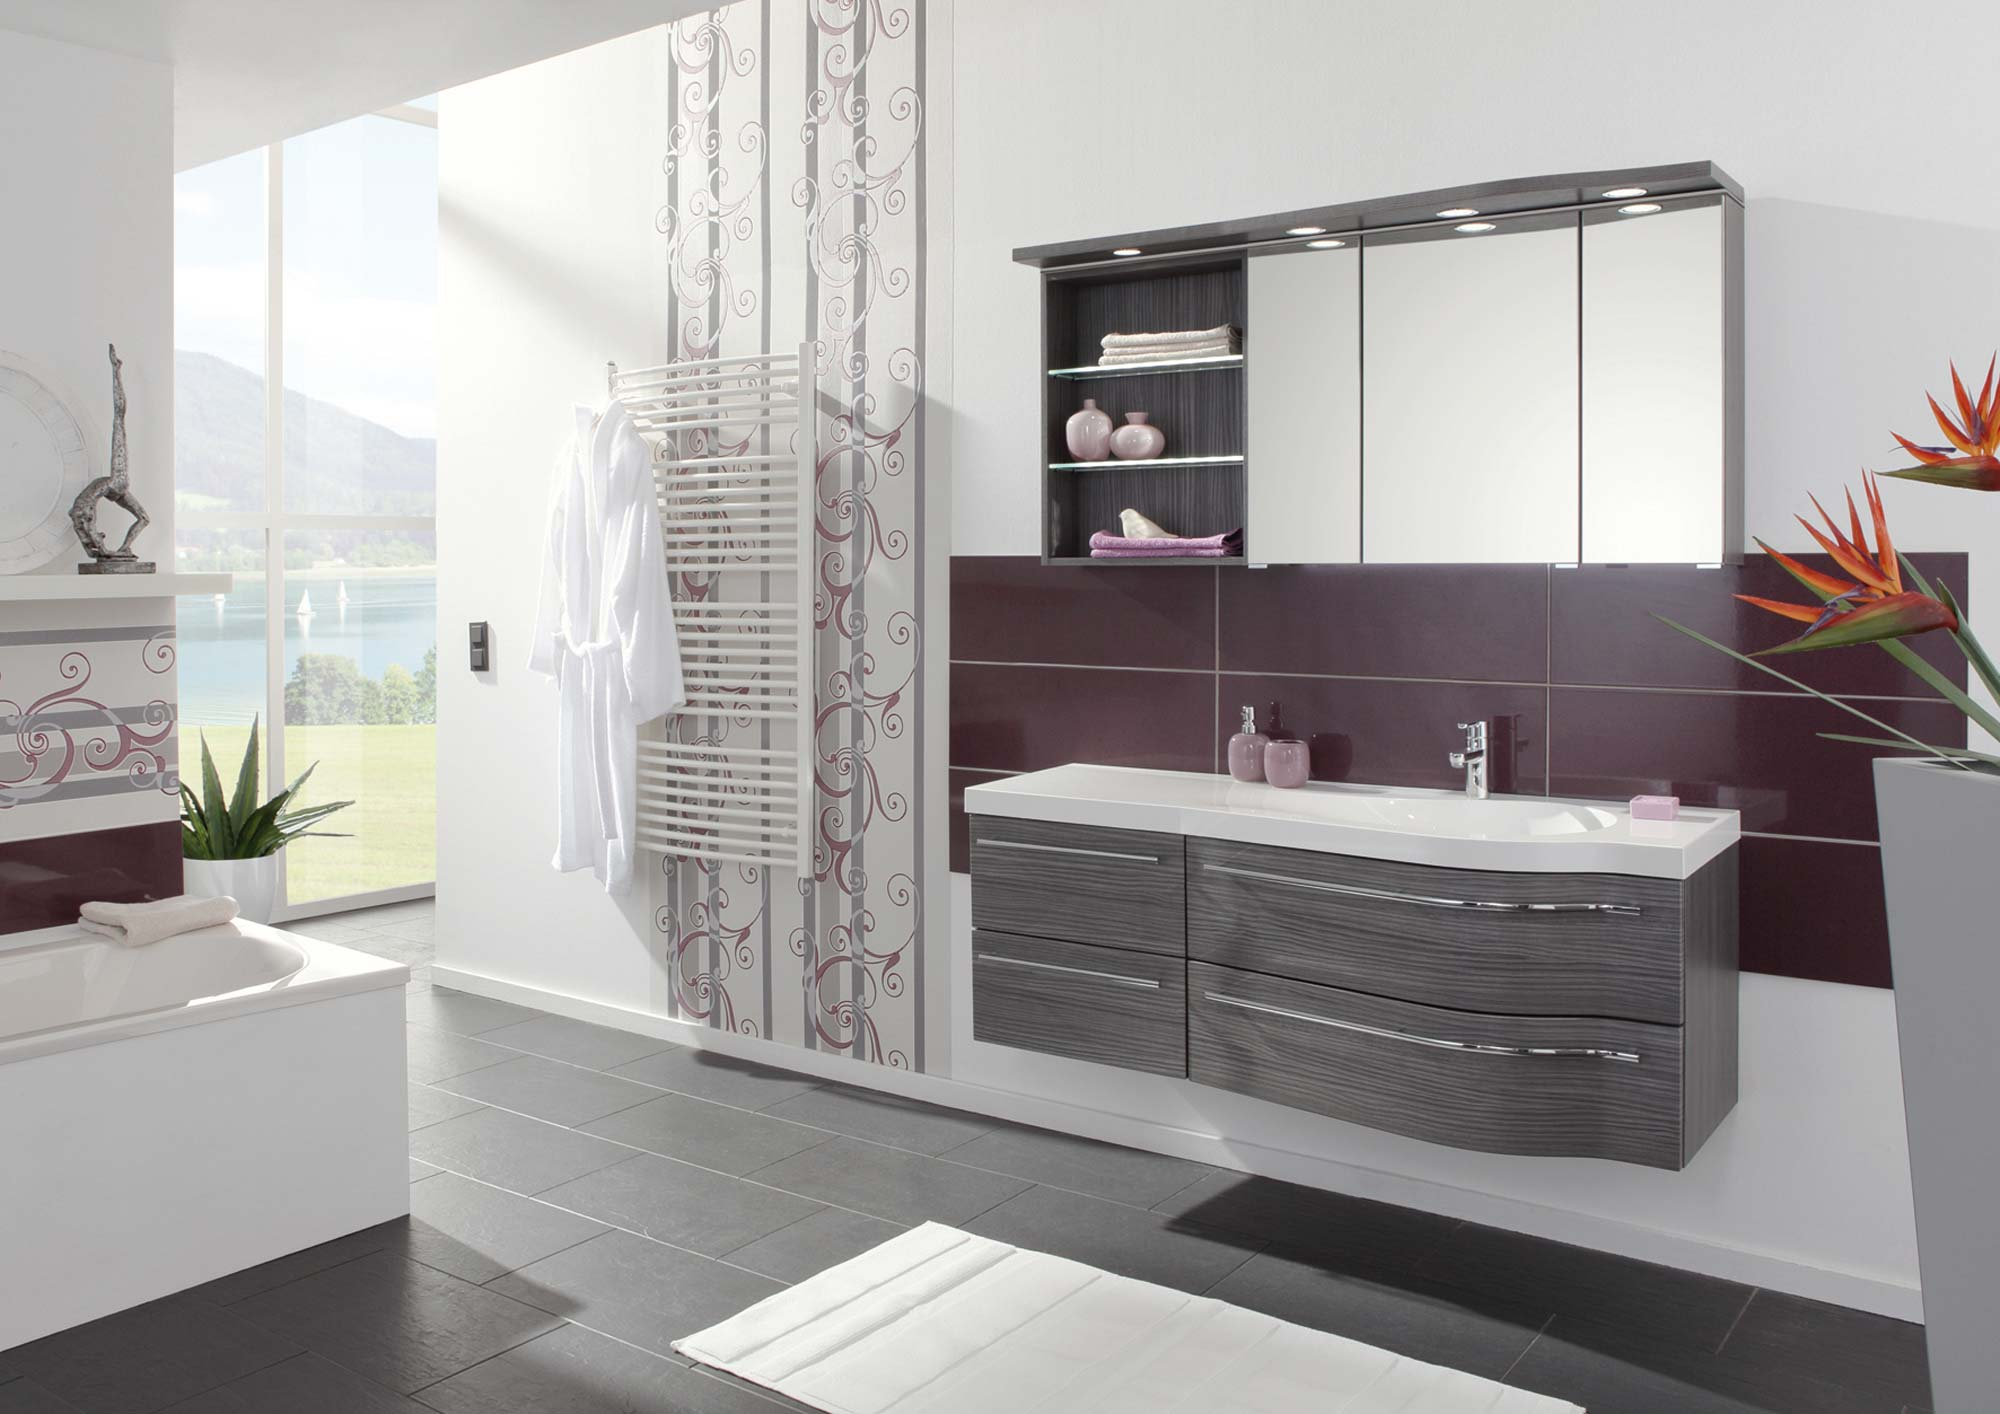 swing meubles de salle de bains baignoires fabricant. Black Bedroom Furniture Sets. Home Design Ideas